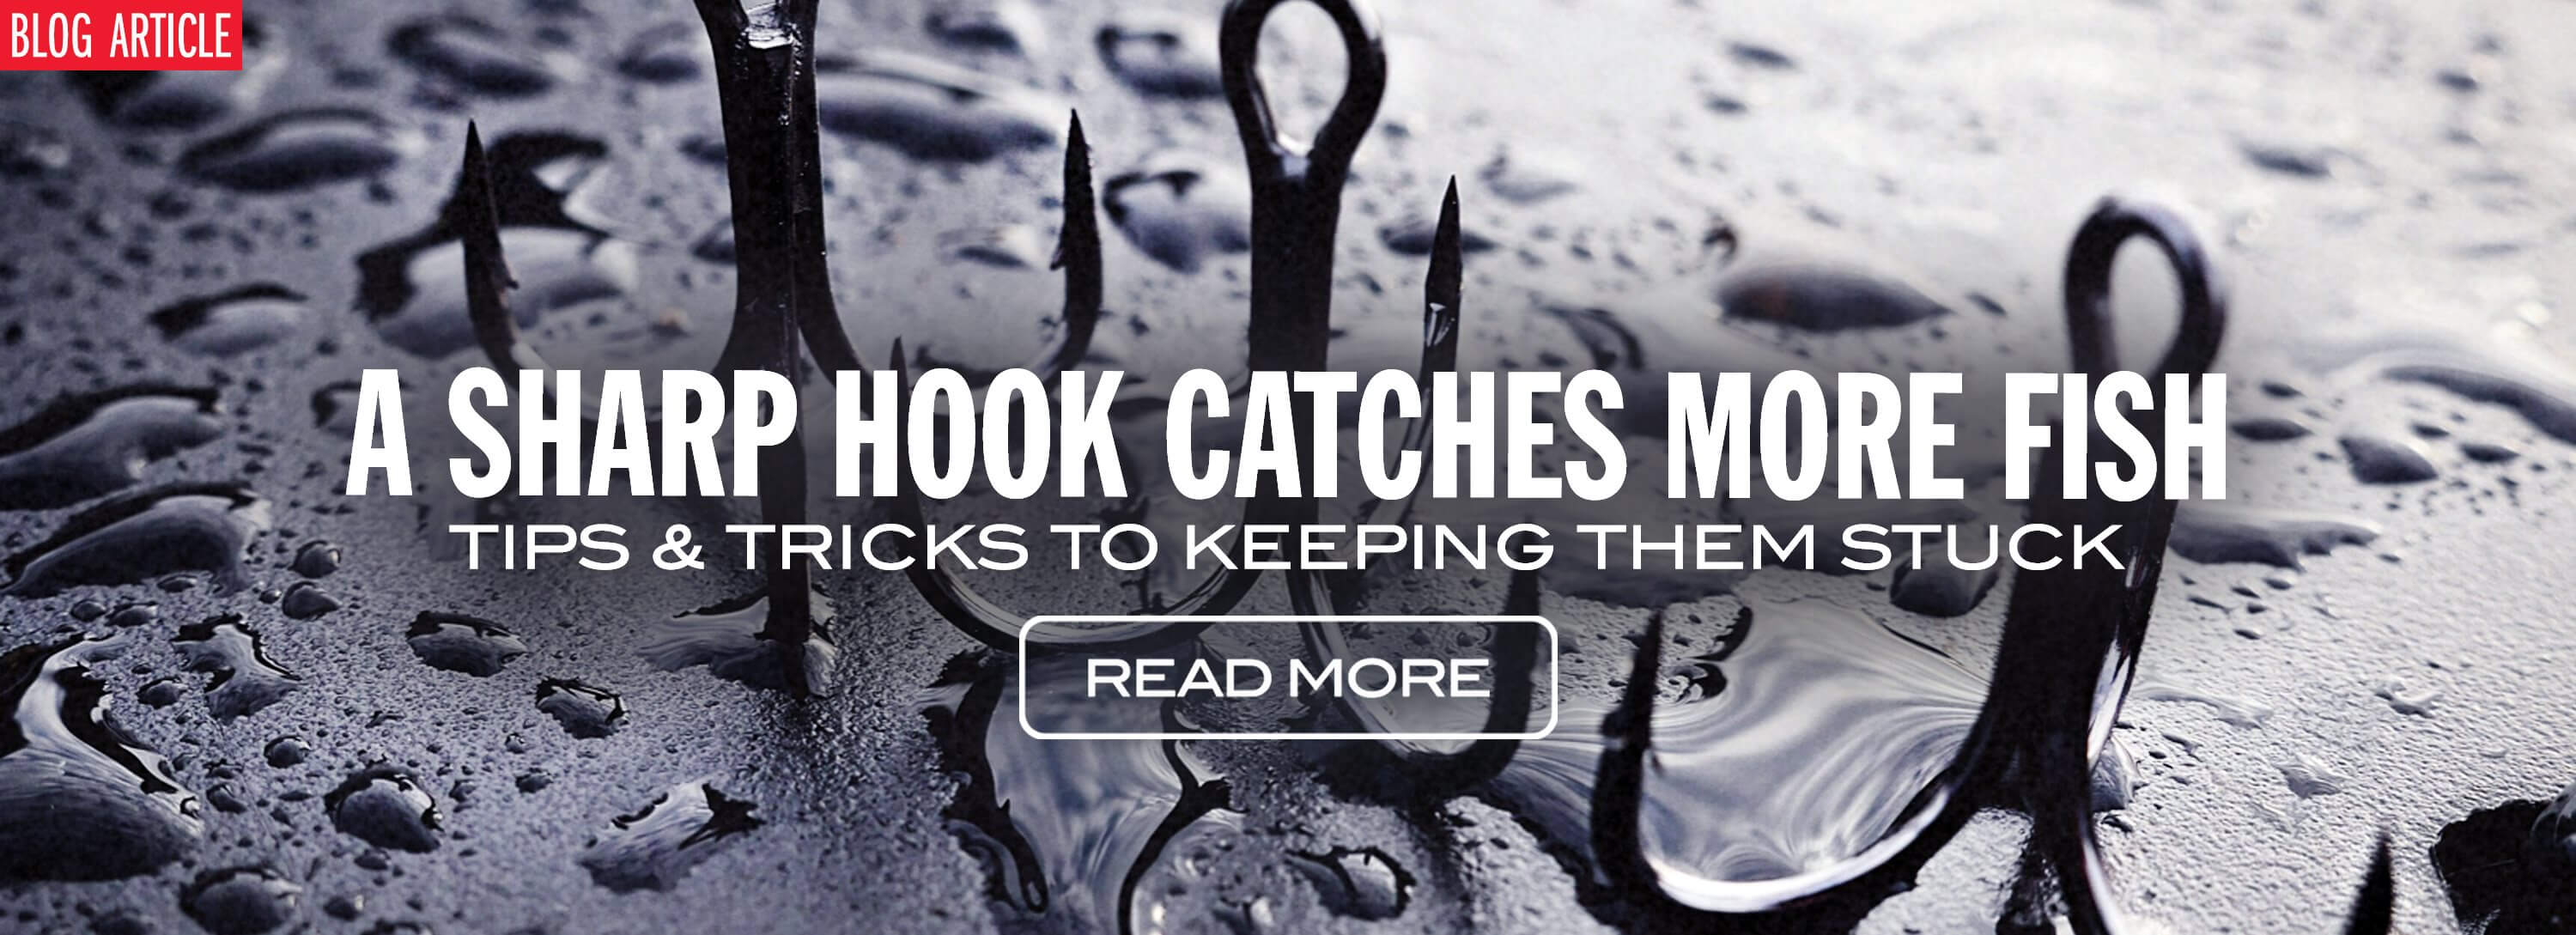 A Sharp Hook Catches More Fish